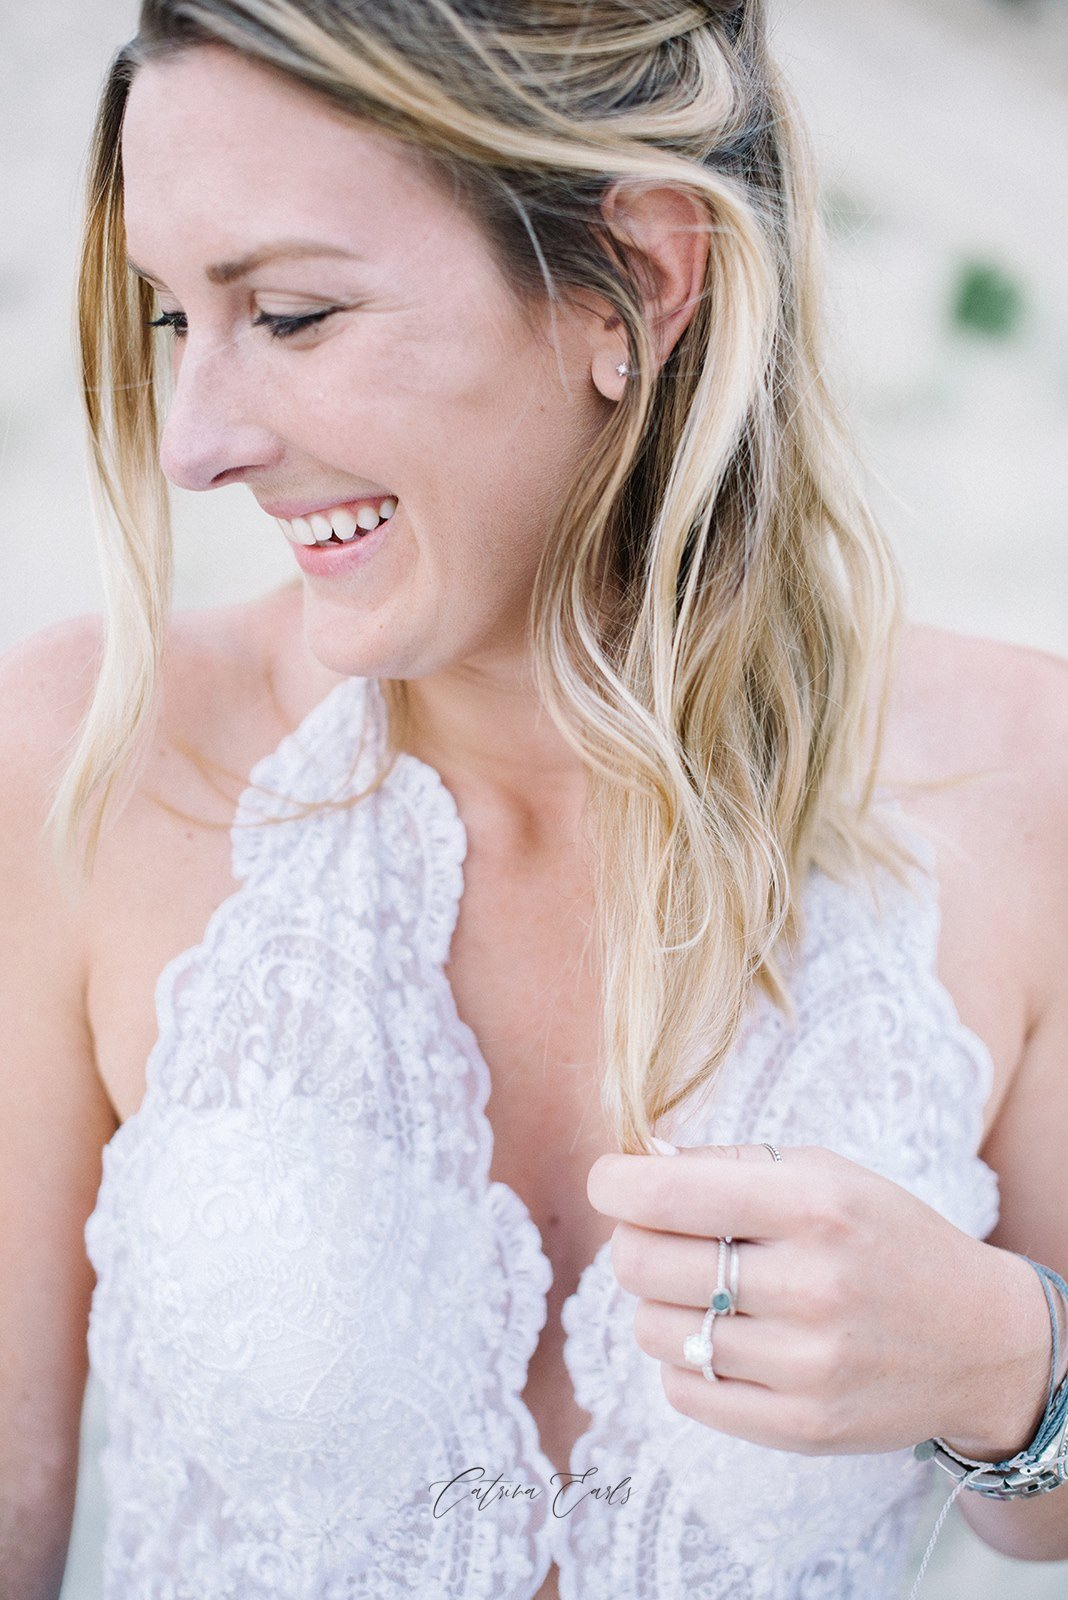 OBX-Wedding-Photographer-6620_websize